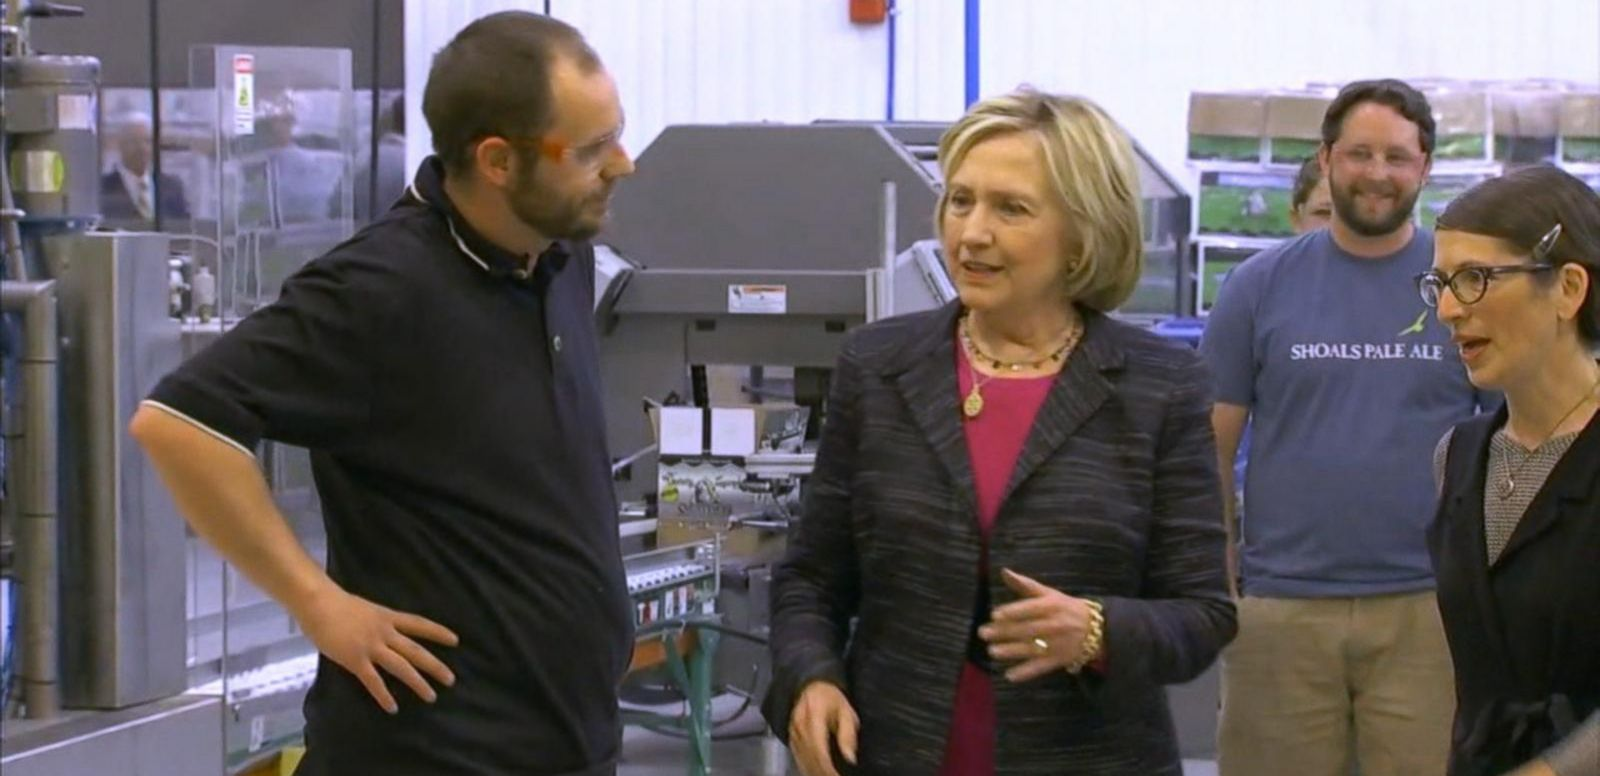 VIDEO: New Clinton Emails Released on Benghazi